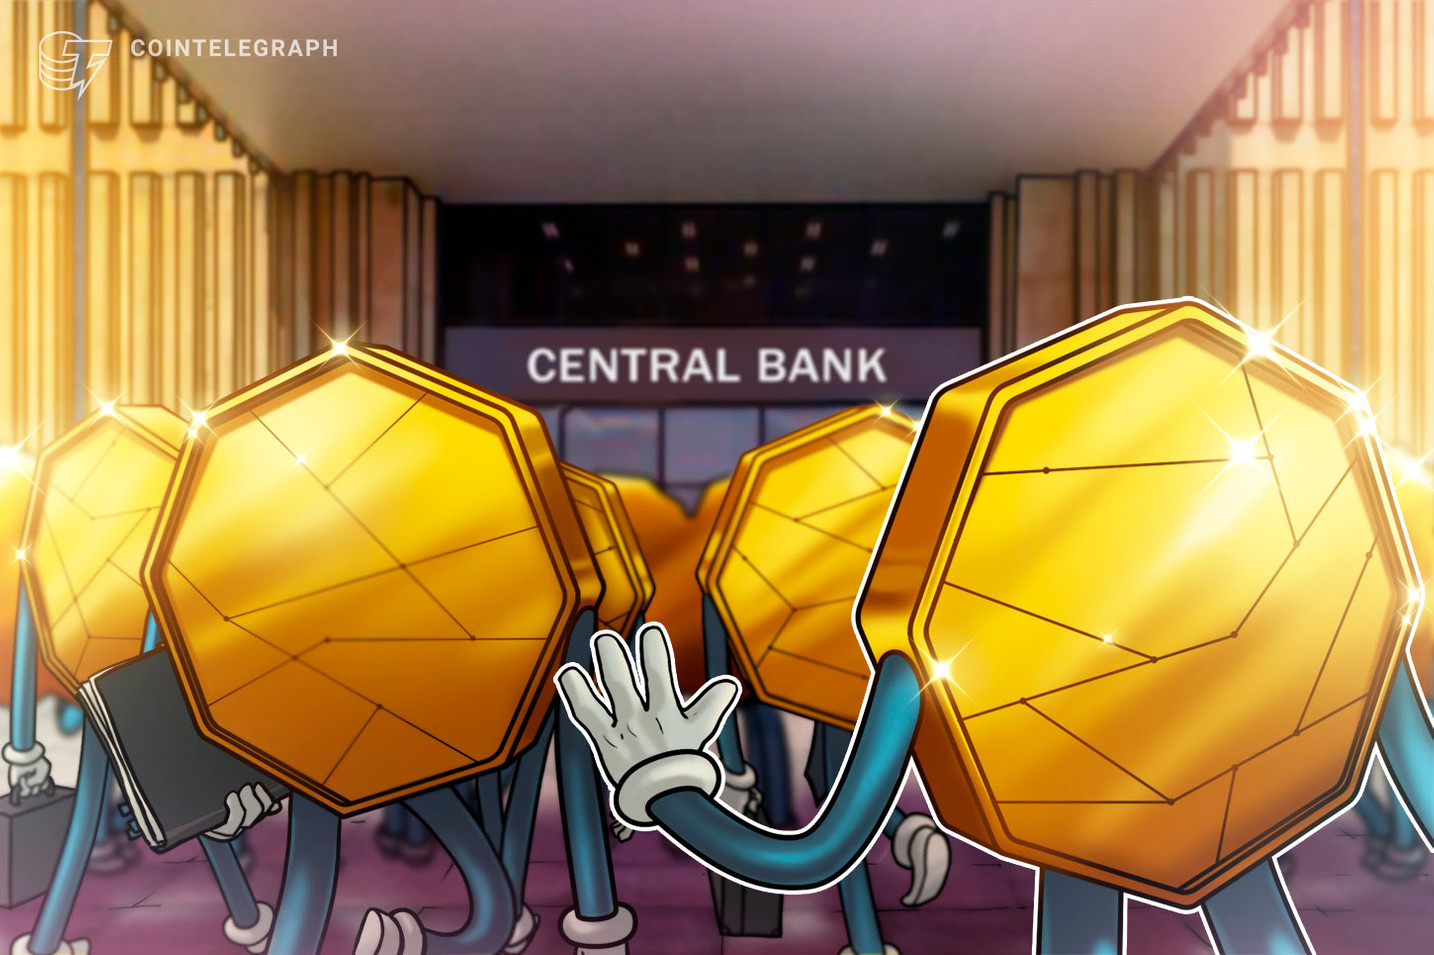 Law Decoded: The rivalry between central banks and global stablecoins, Oct. 9–16